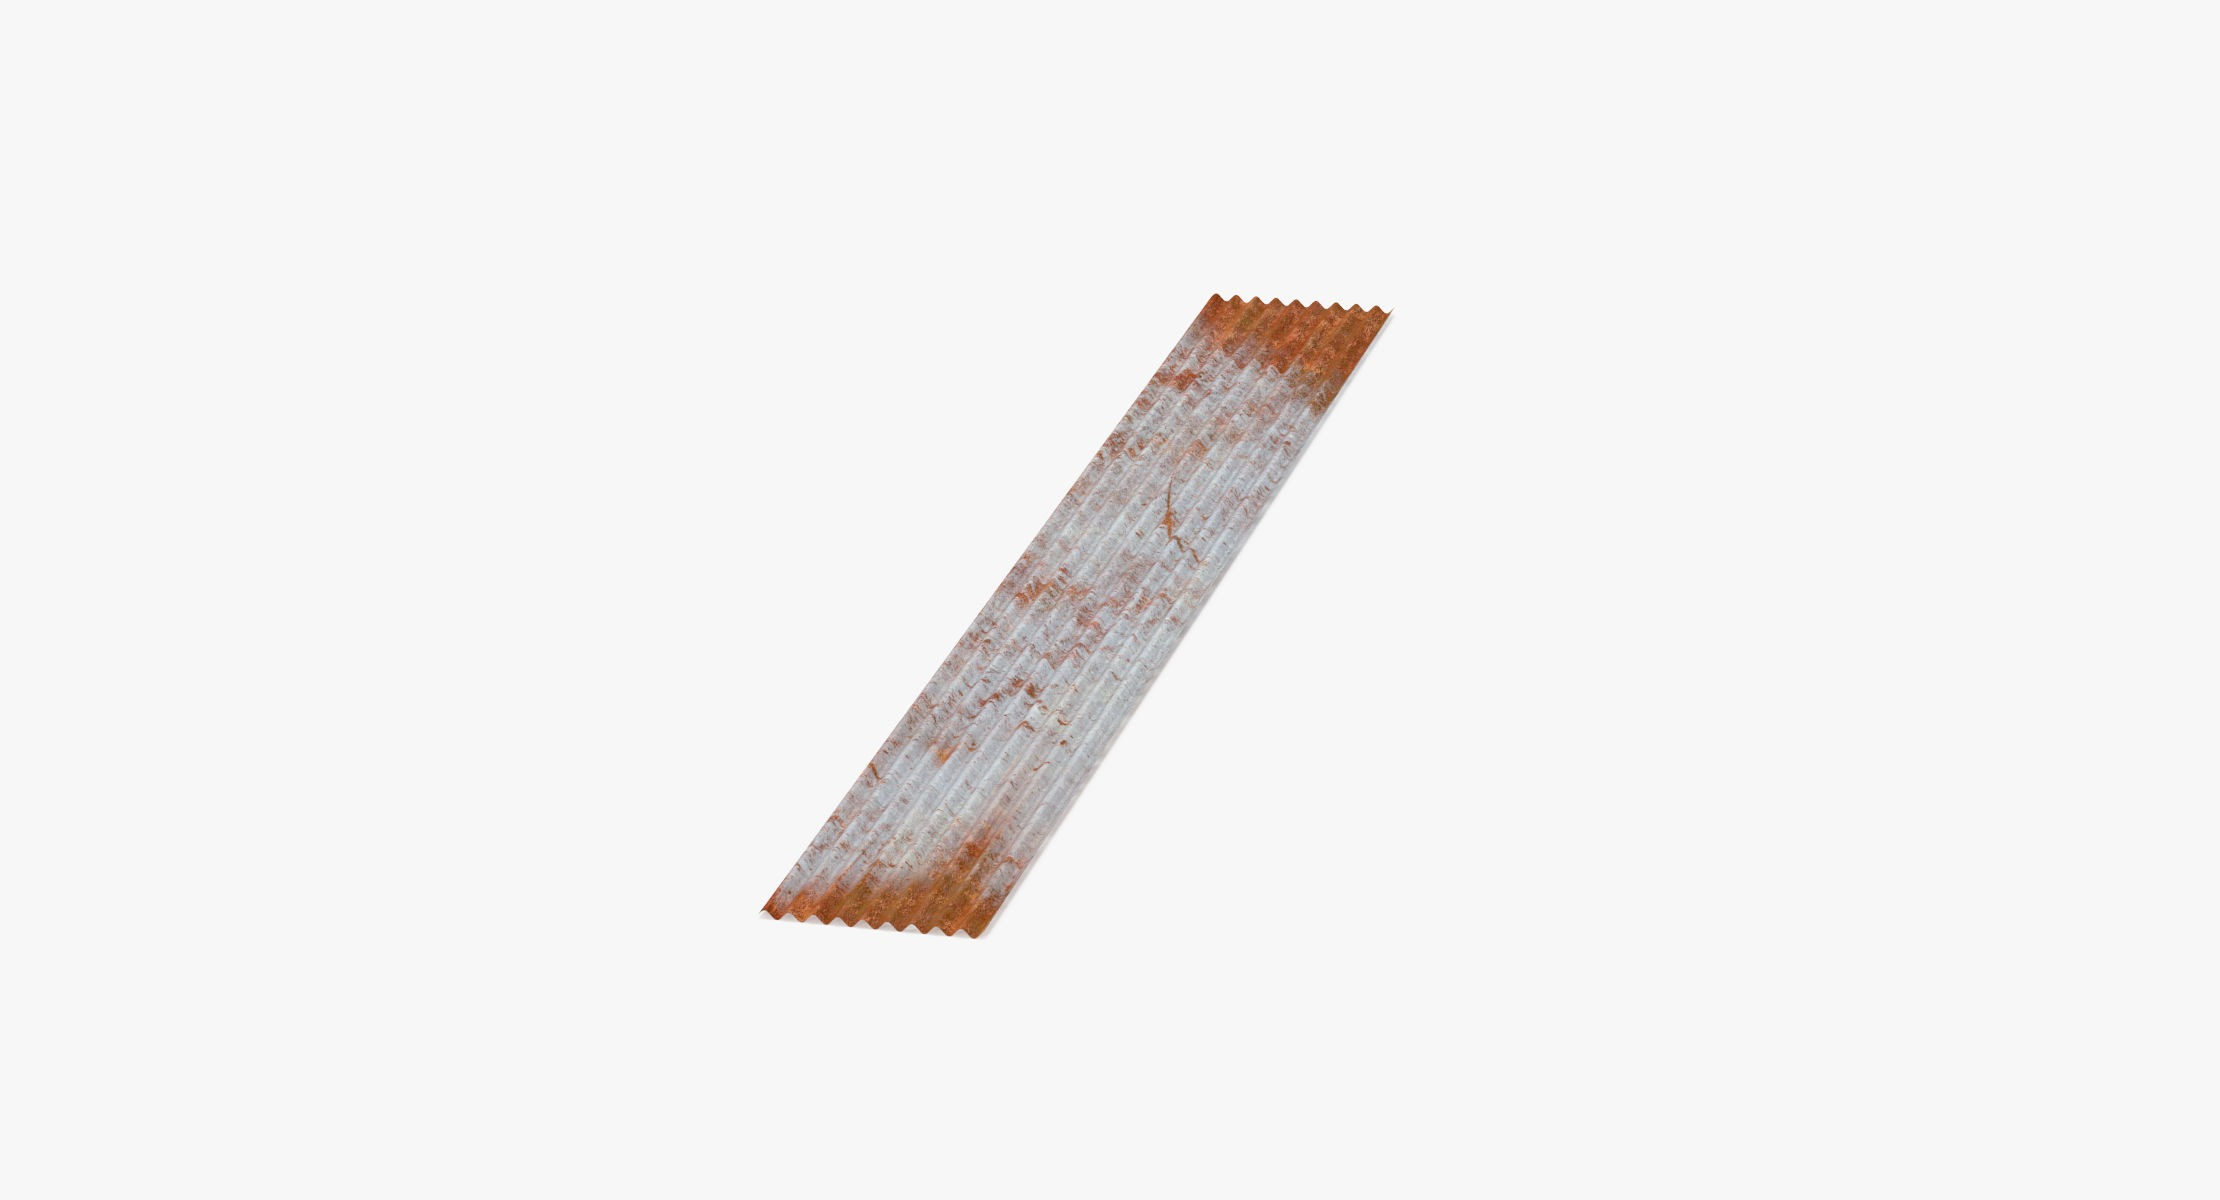 Corrugated Metal Sheets Rusted - Large - reel 1